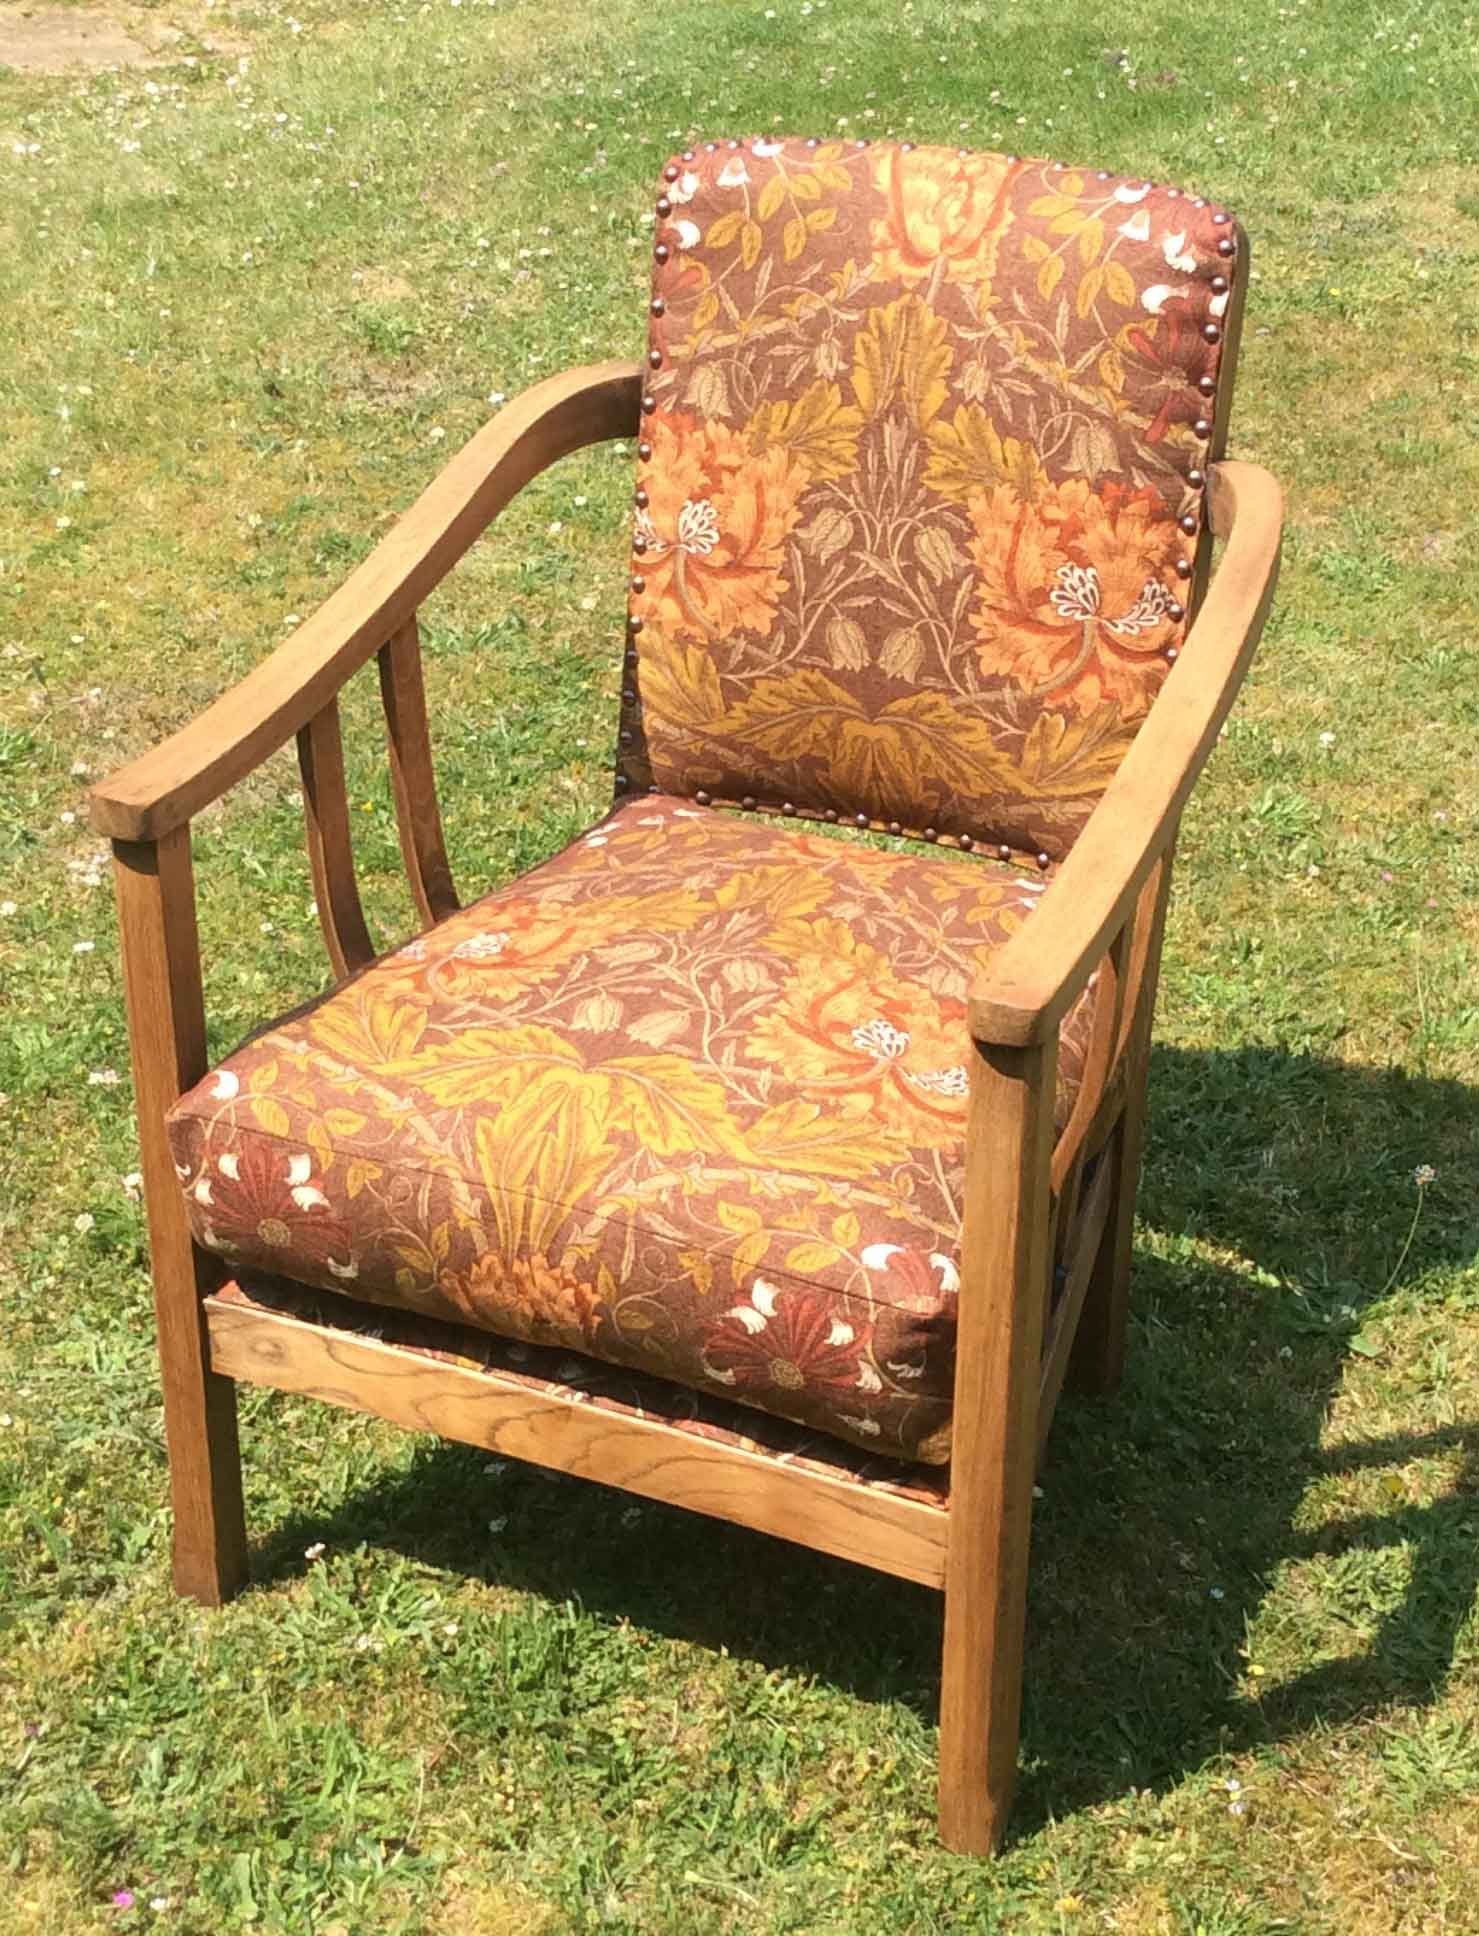 Arts and crafts style oak chair upholstered in honeysuckle by William Morris